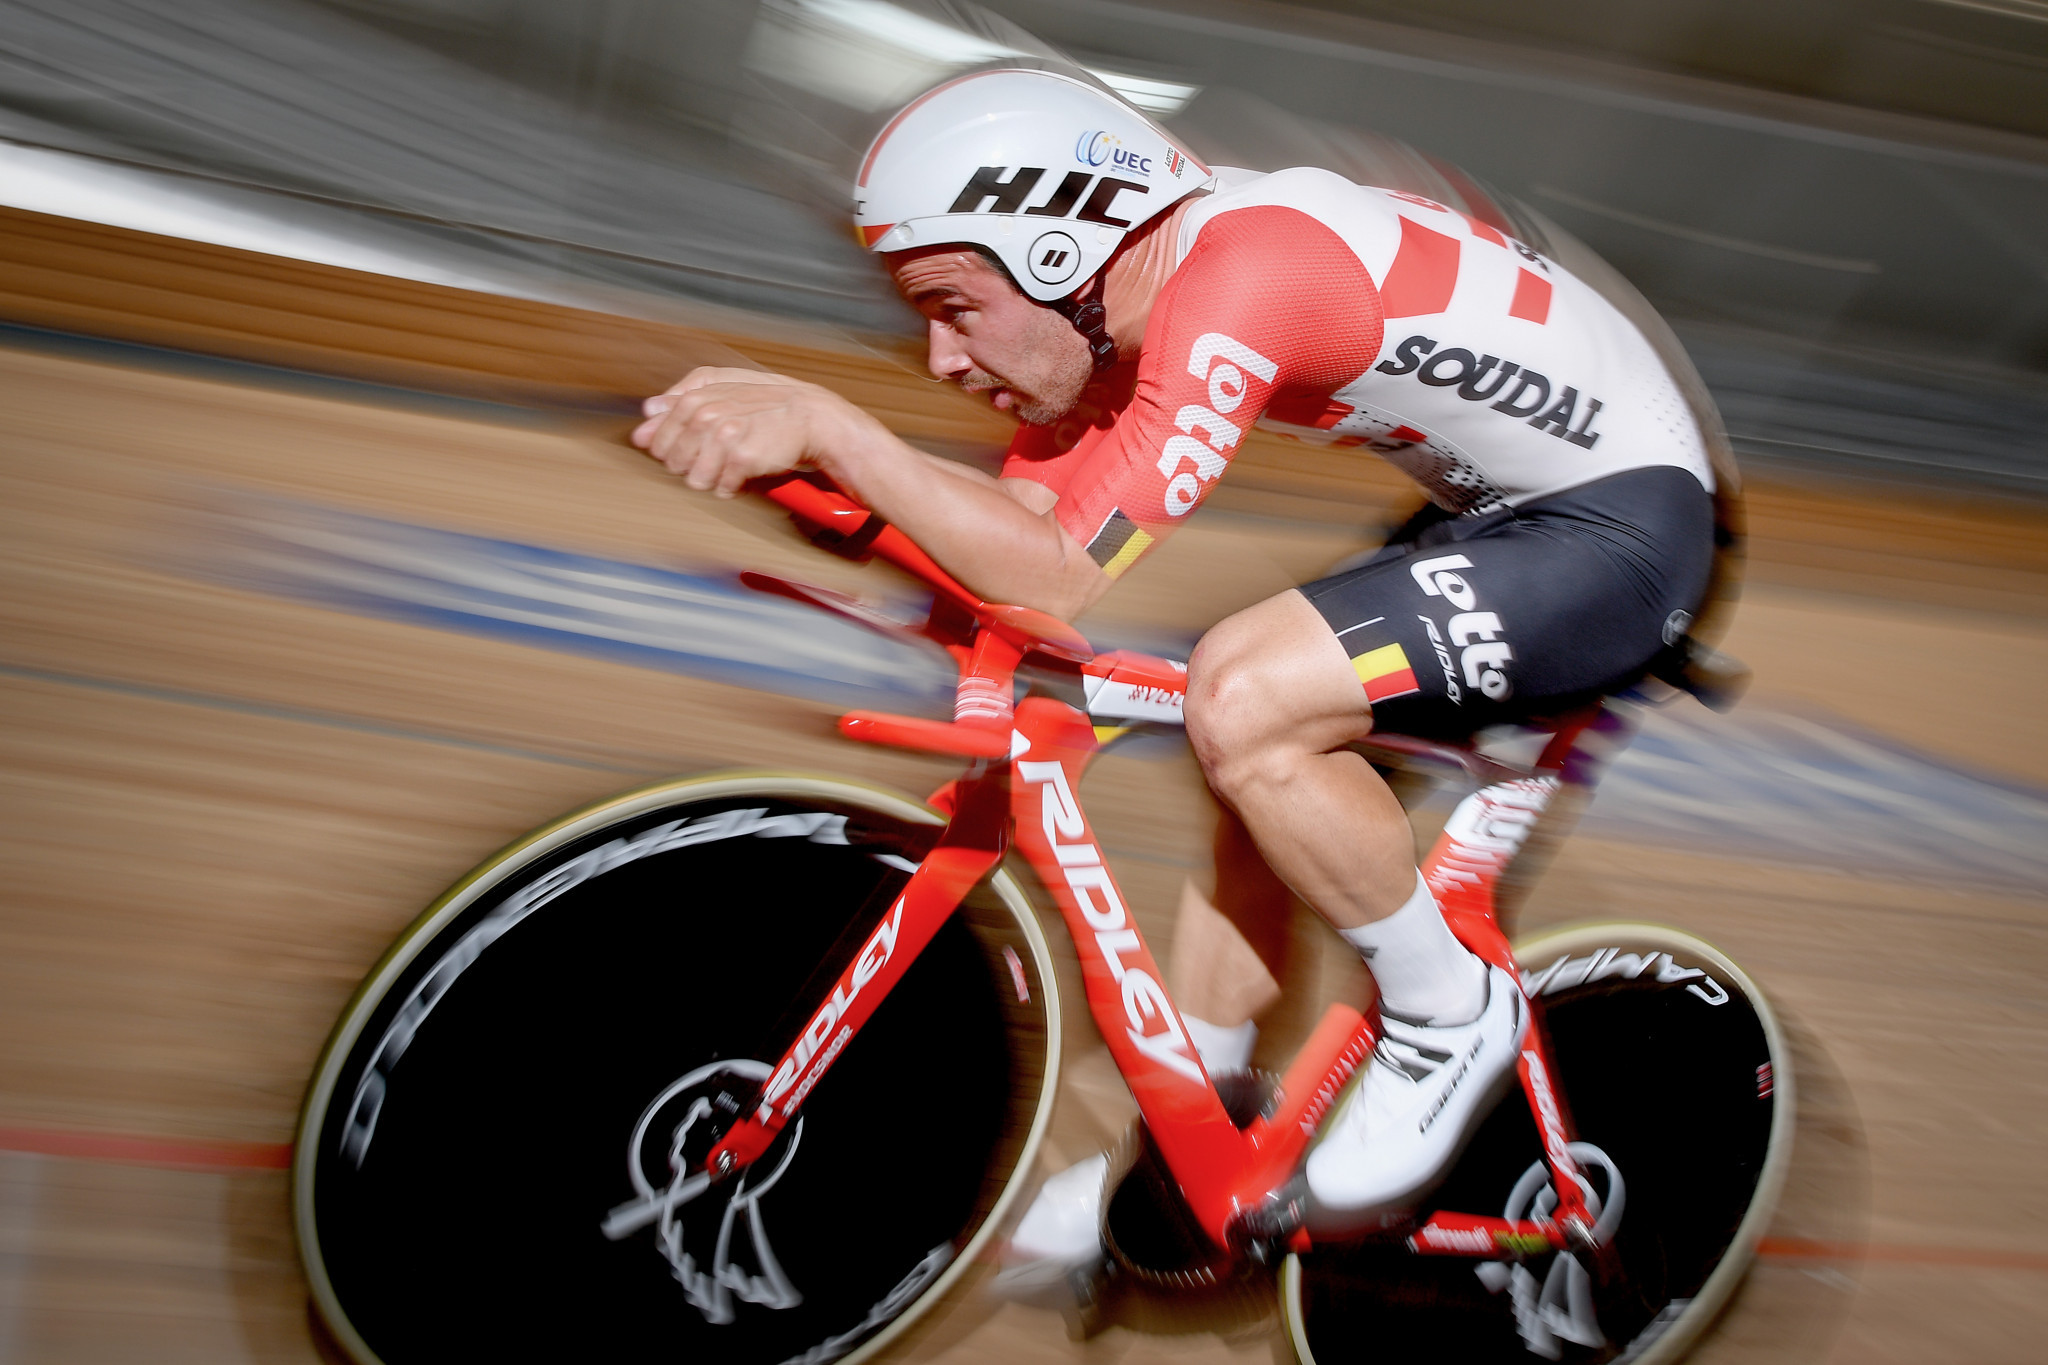 Campenaerts set for attempt on Sir Bradley Wiggins' UCI hour record in Aguascalientes